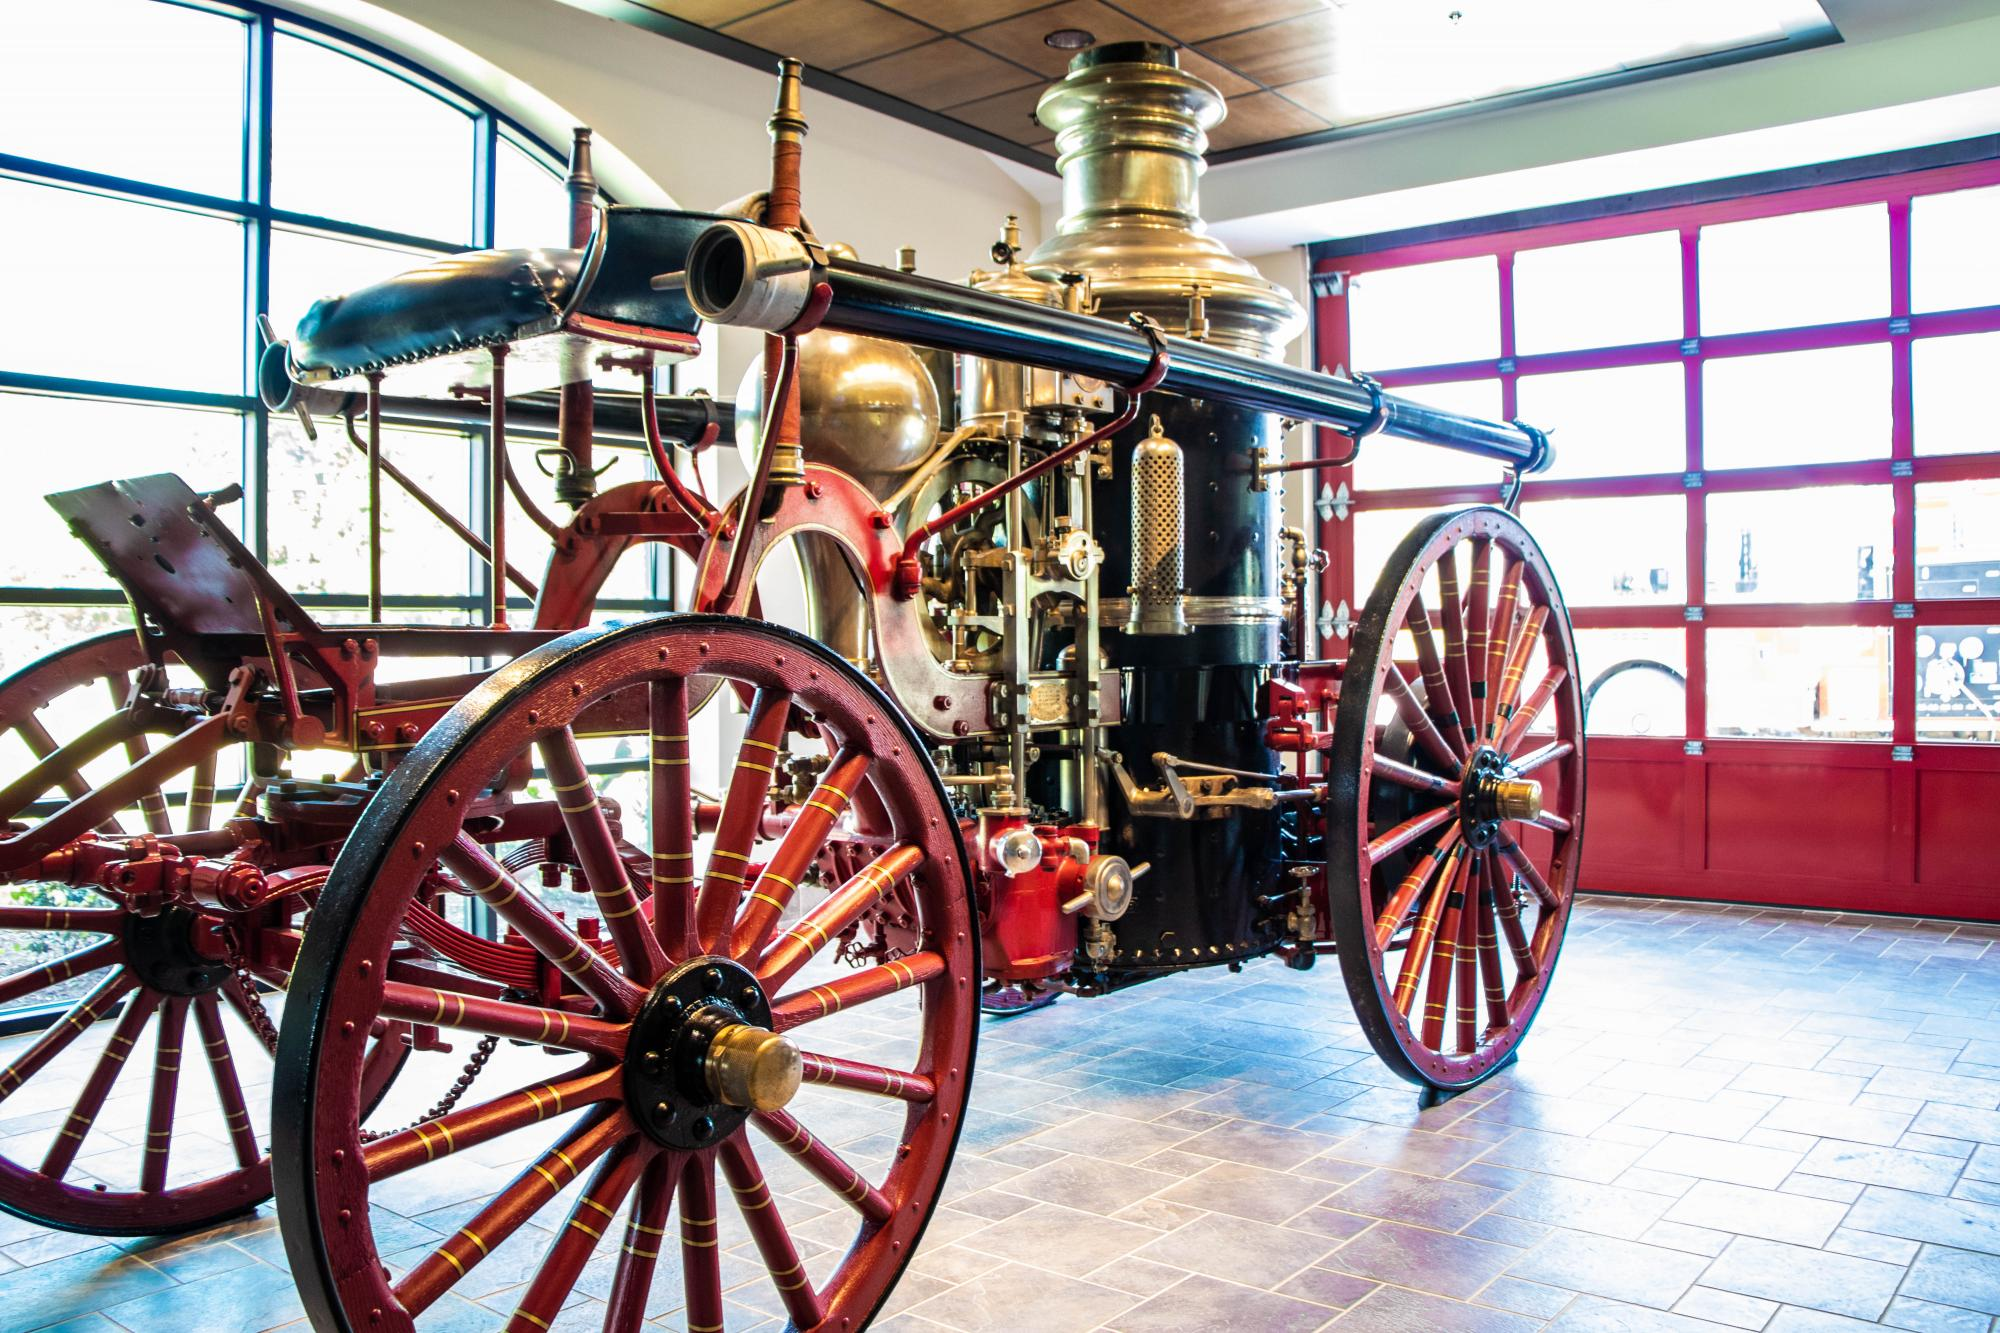 LaFrance Fire Steam Engine